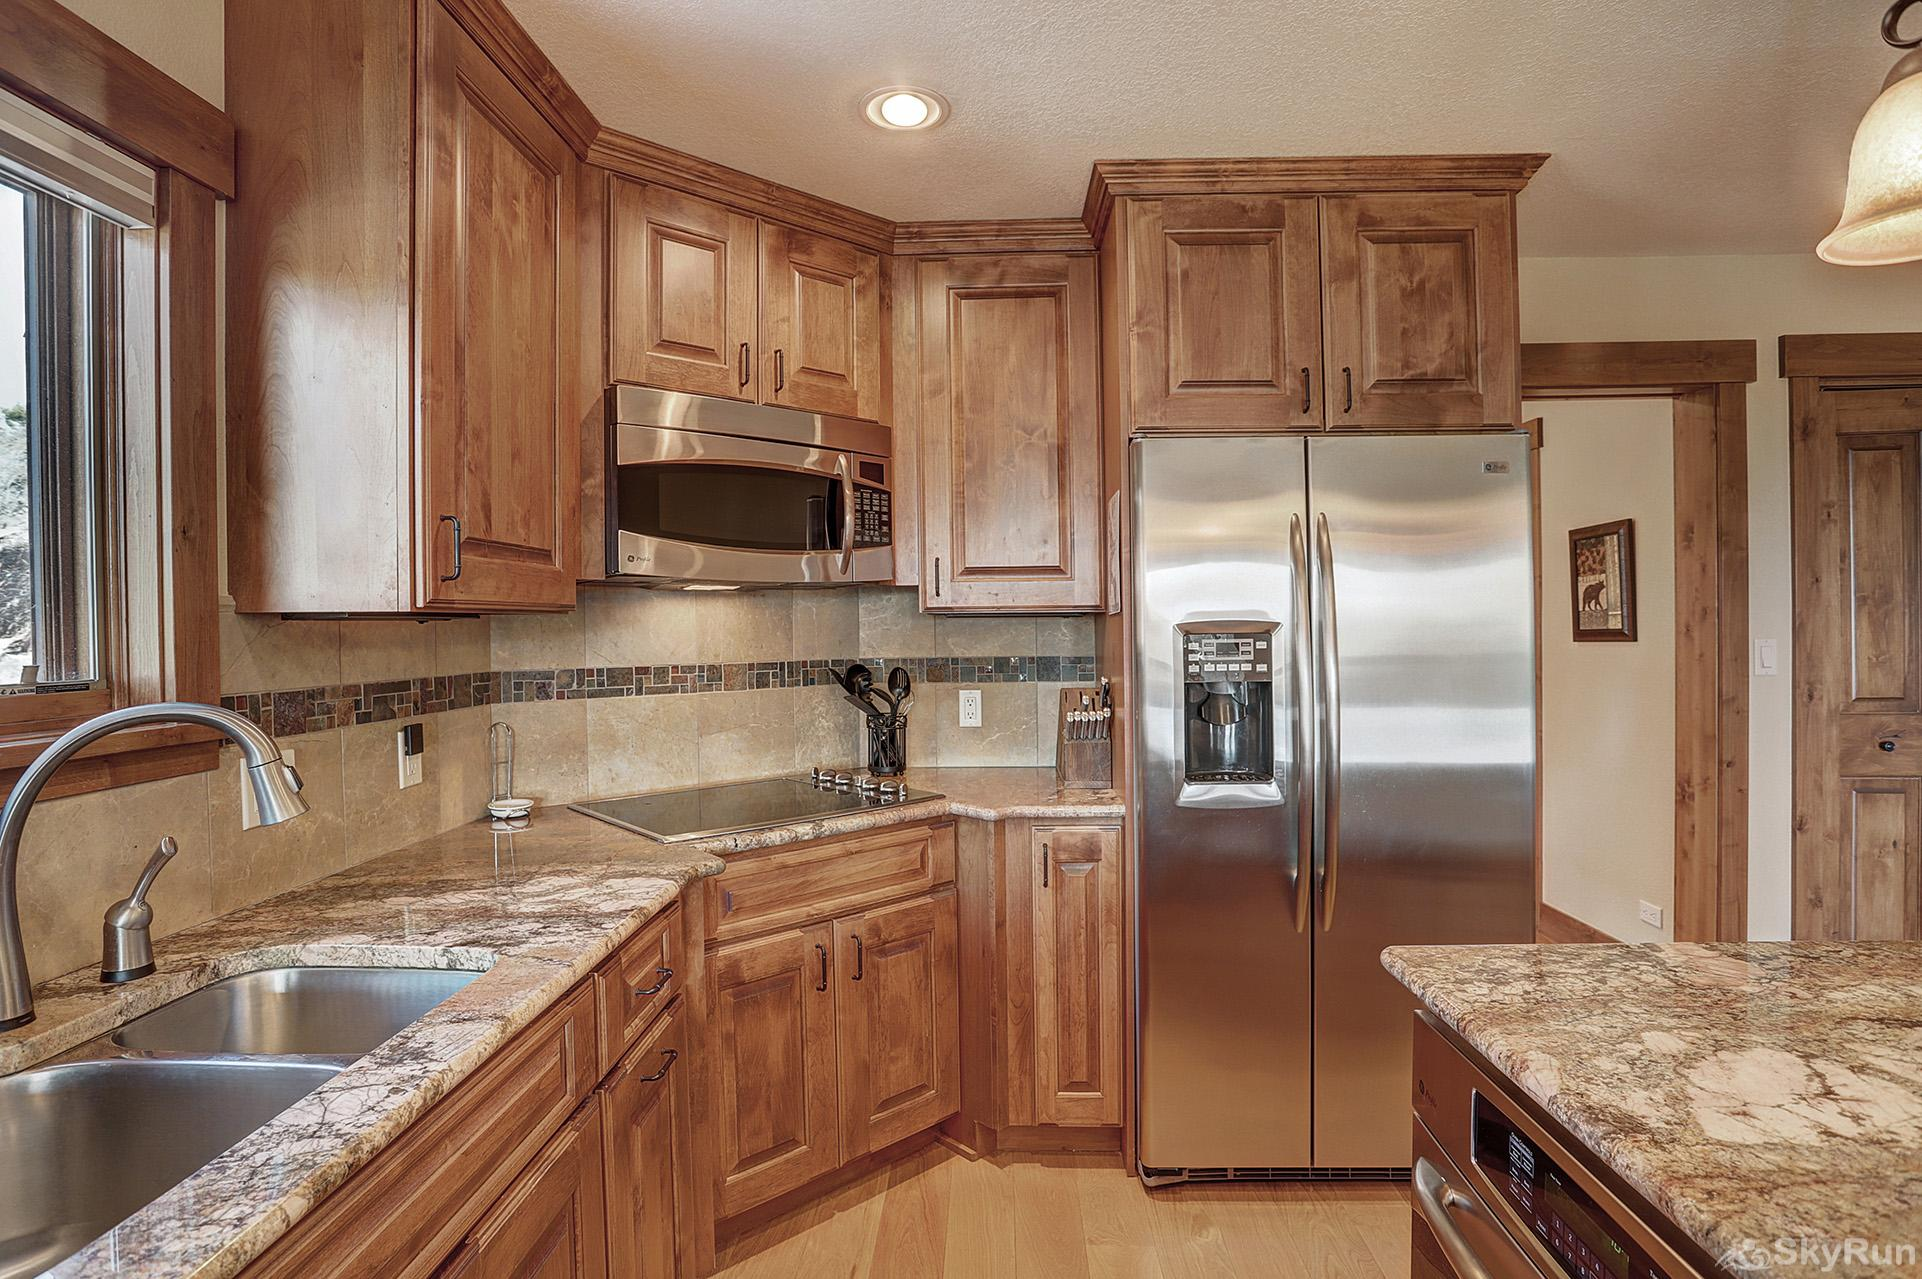 Happy Trails Prepare tasty home cooked meals with the convenience of a fully equipped kitchen